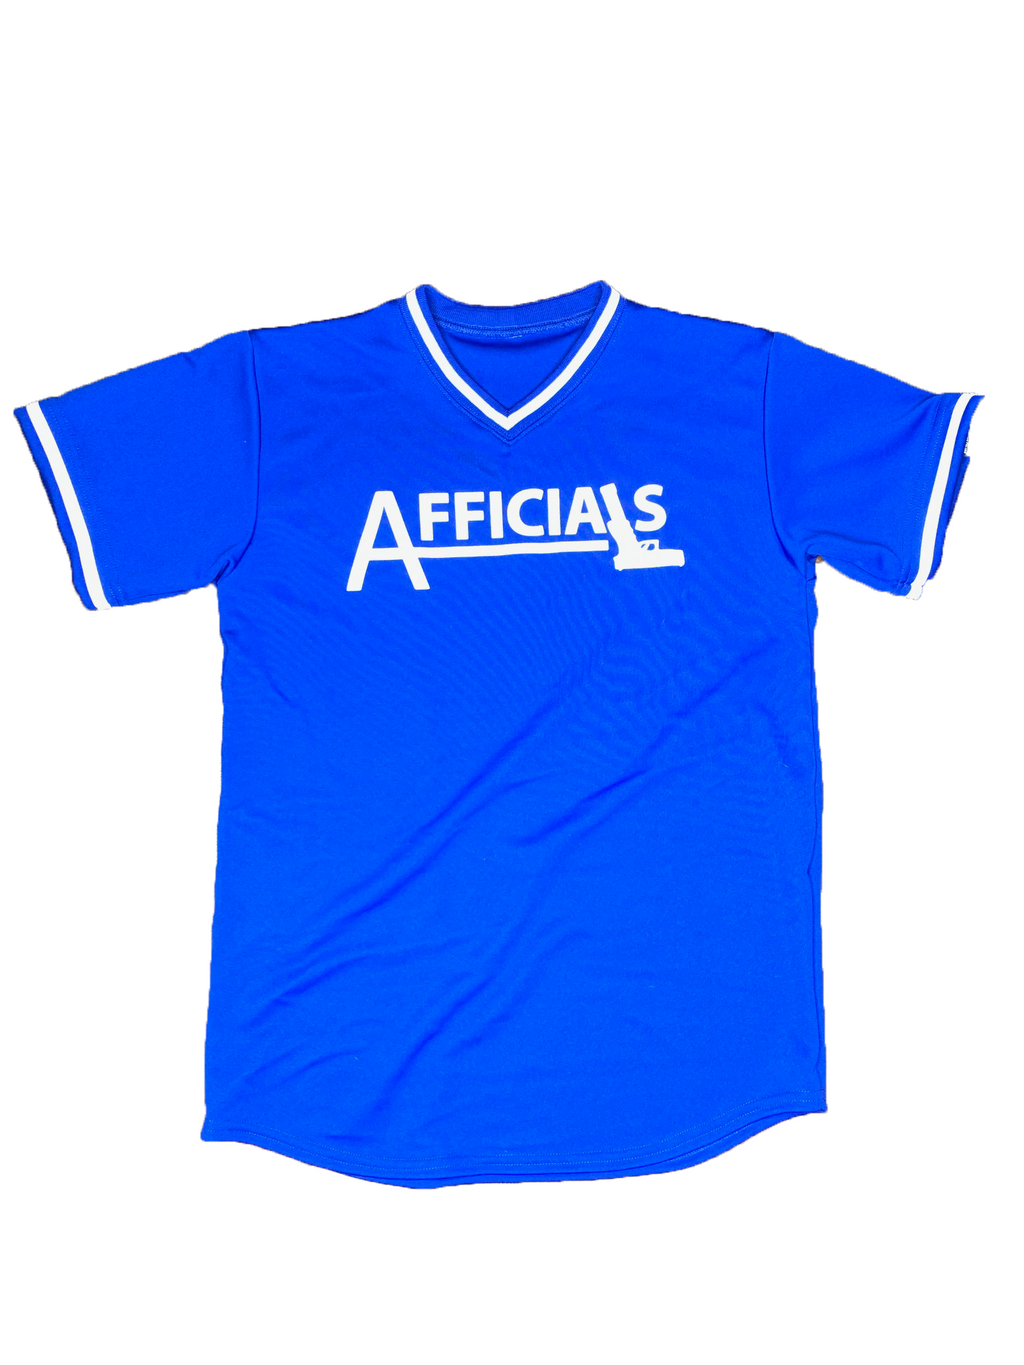 "Afficials ""40"" Jersey ROYAL BLUE/WHITE"